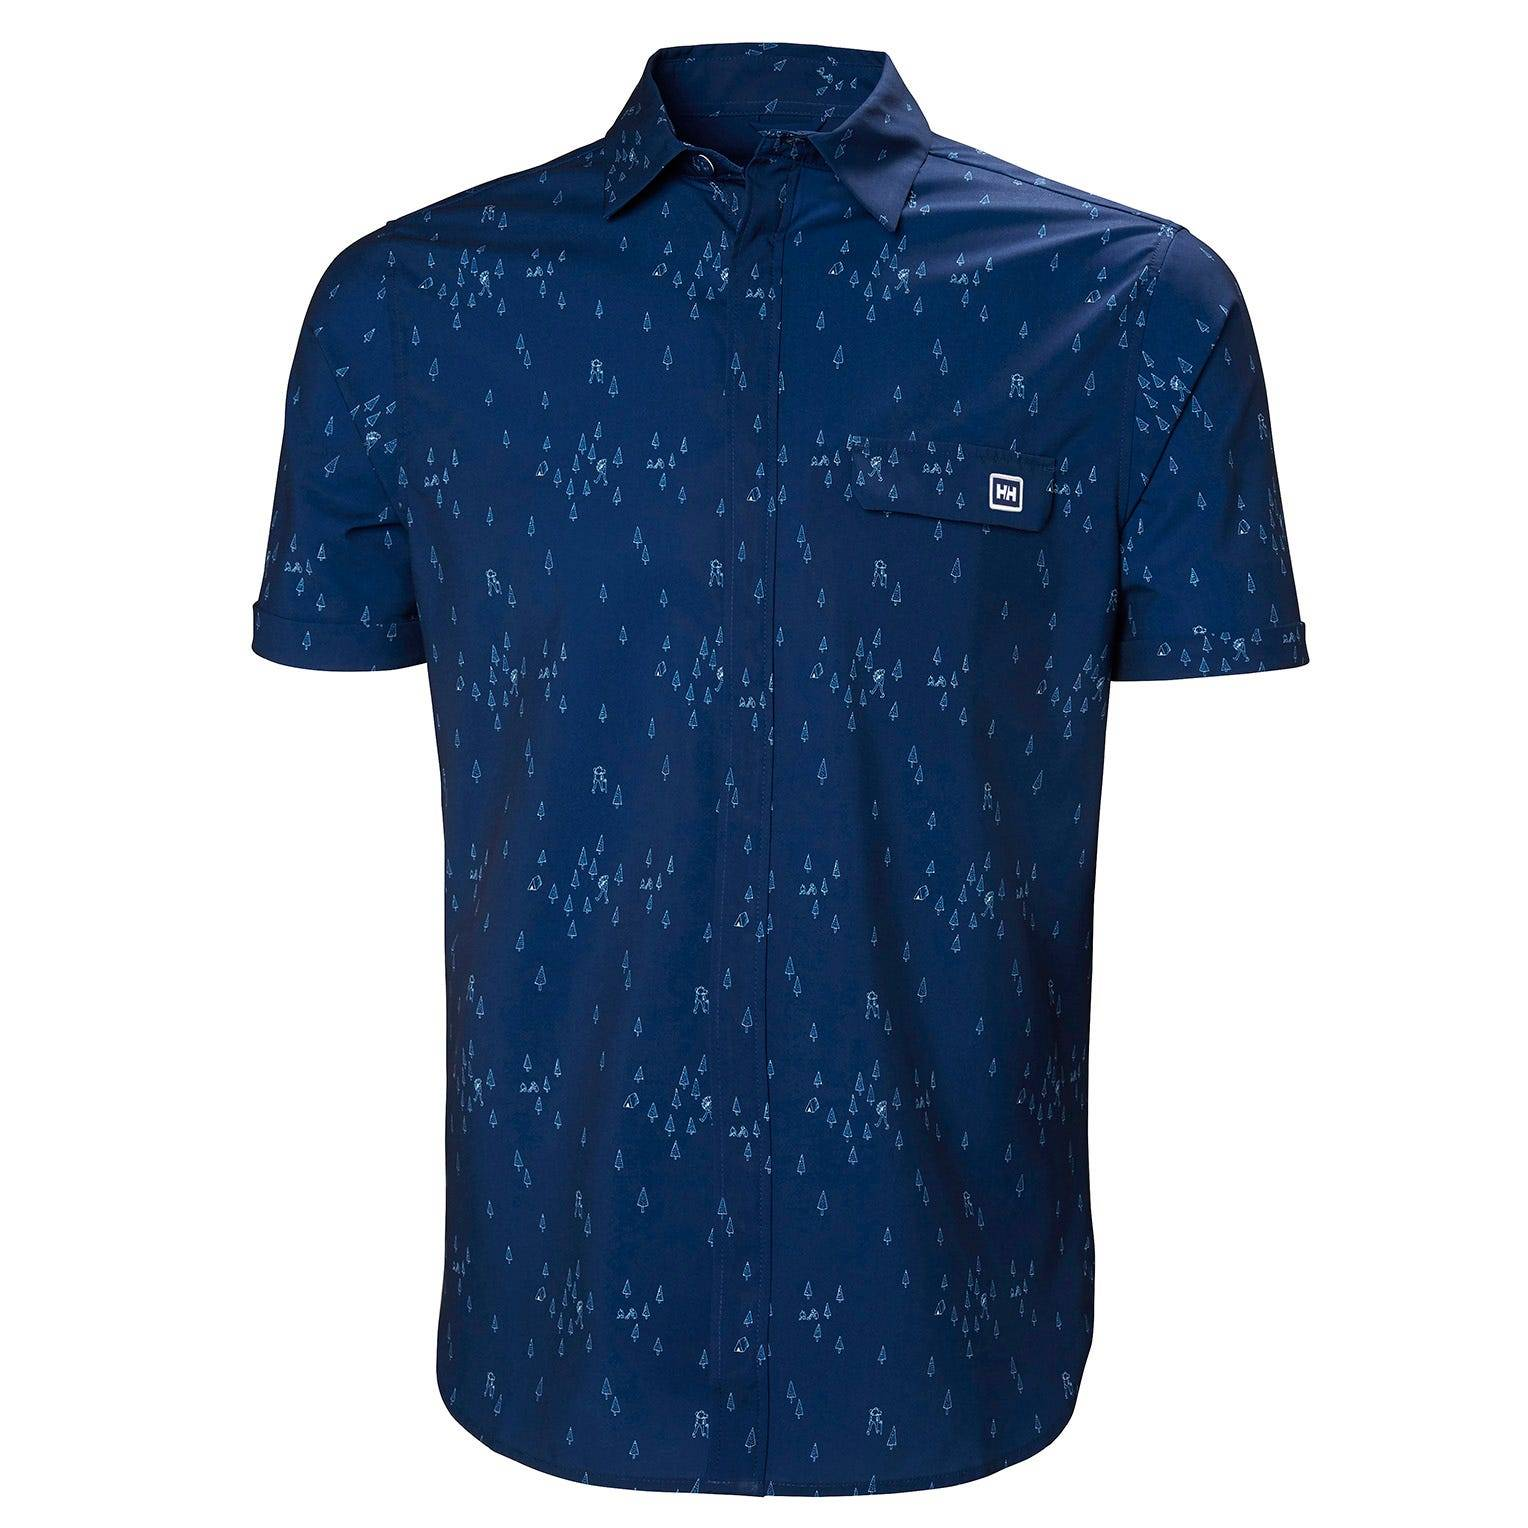 Helly Hansen Oya Shirt Blue L